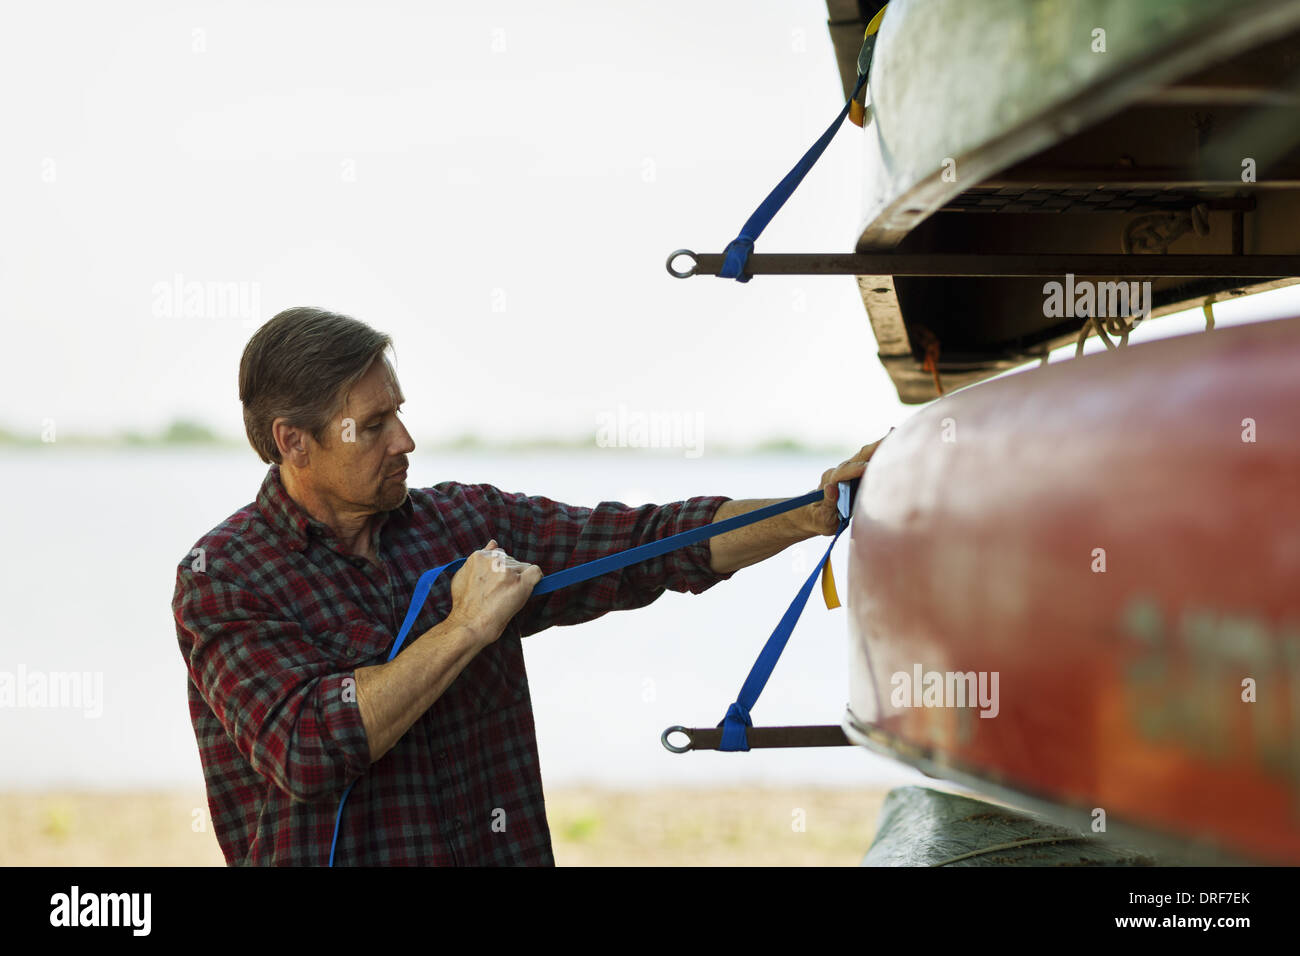 Colorado USA man stacking rowing boats lashing onto trailer - Stock Image